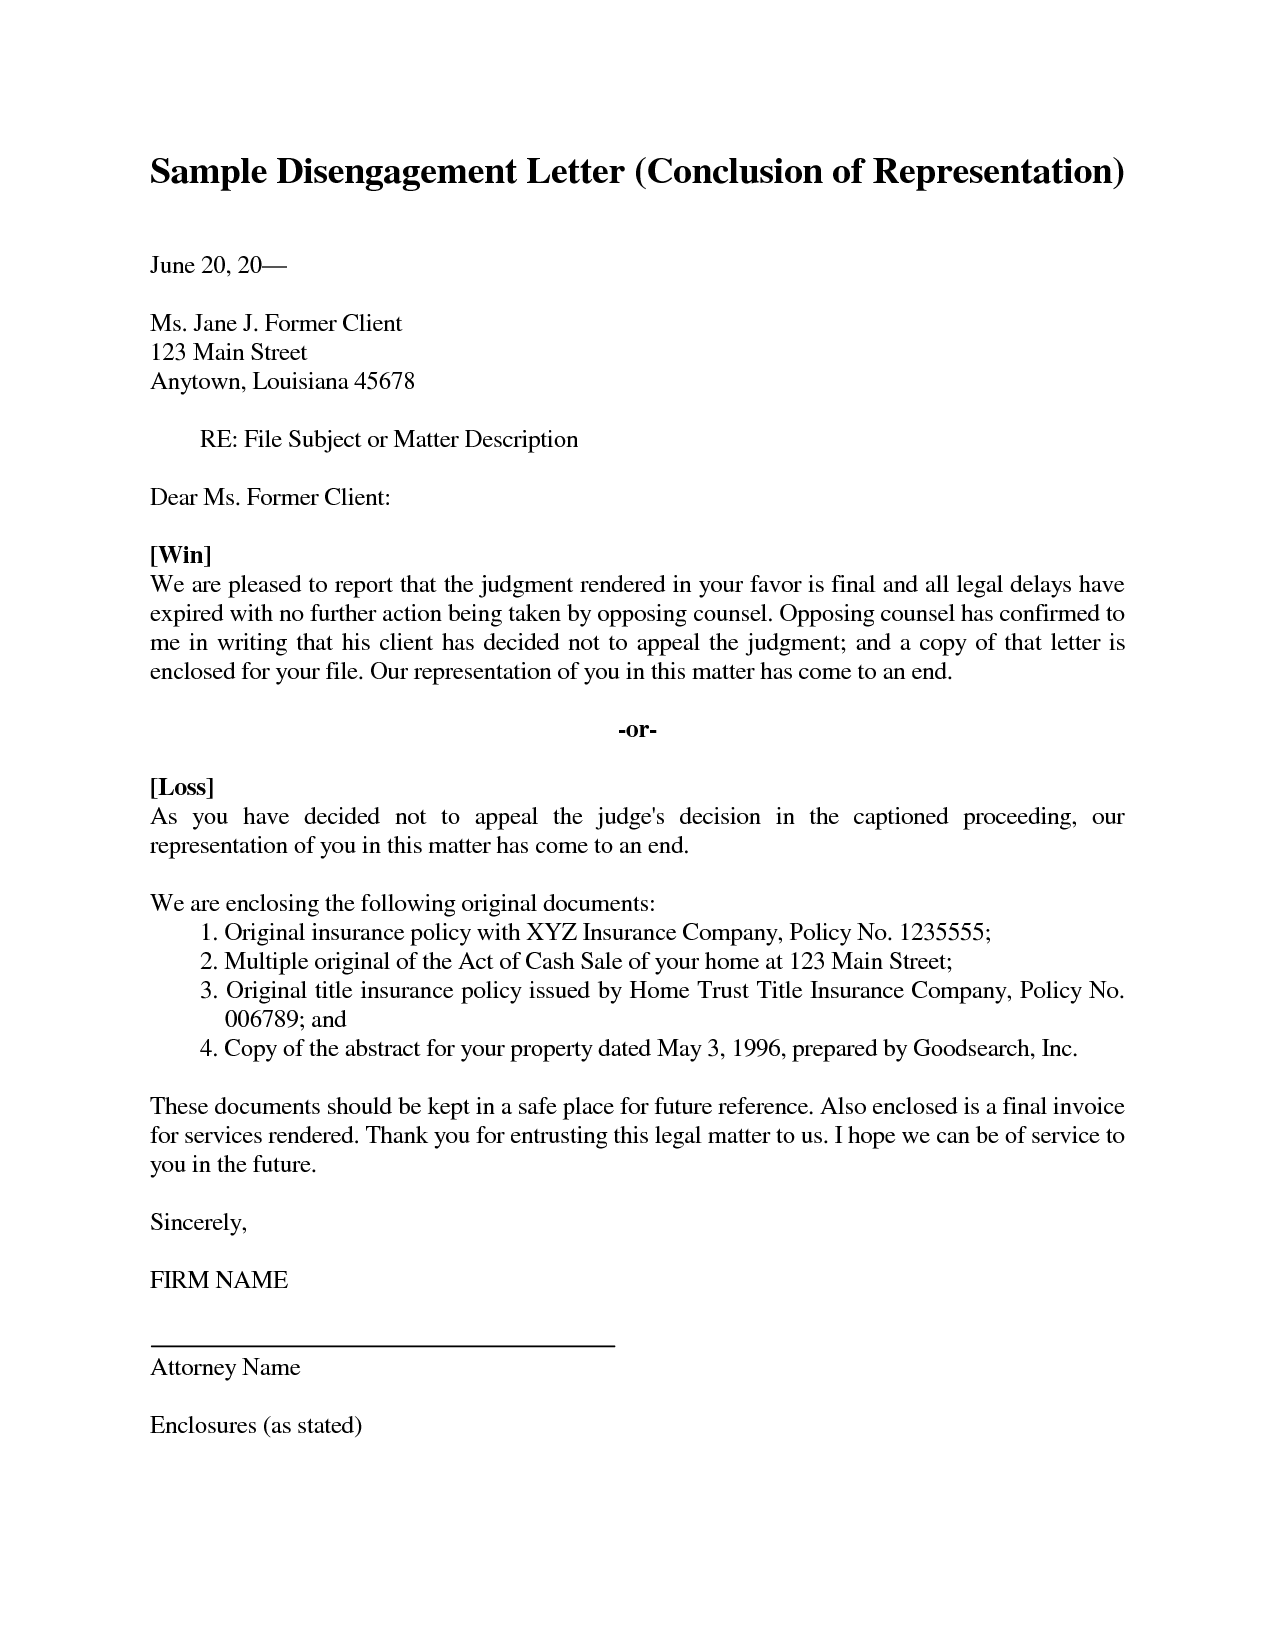 Sample Legal Representation Letter | mobile discoveries